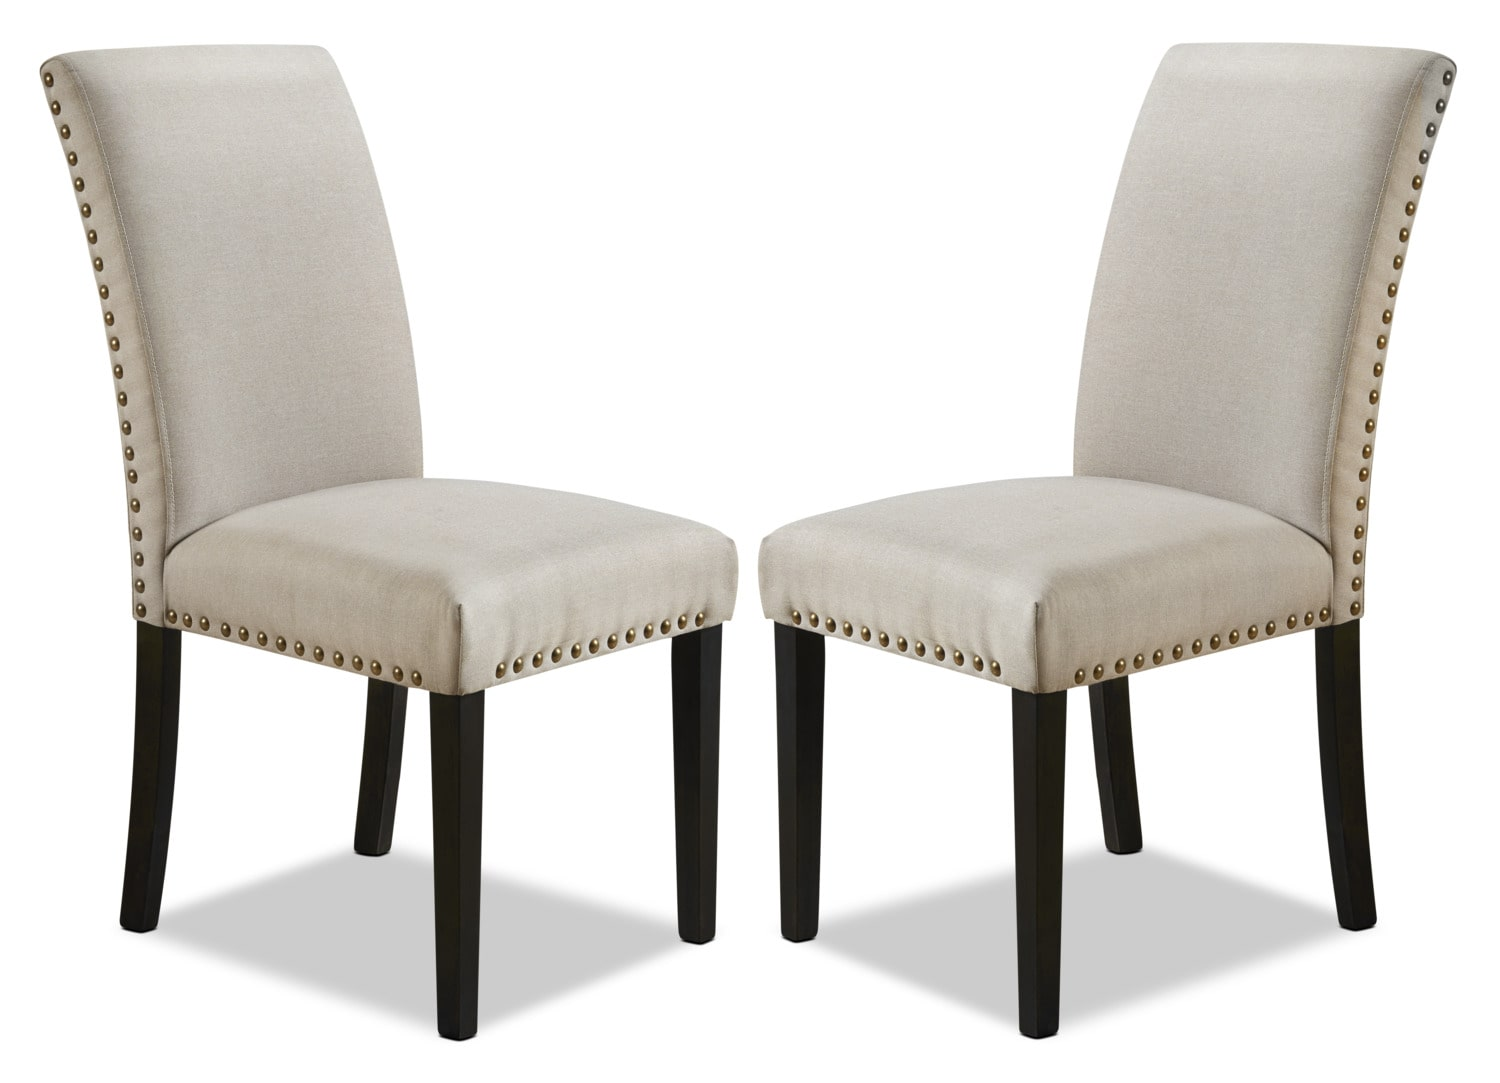 York Studded Dining Chair, Set of 2 – Beige